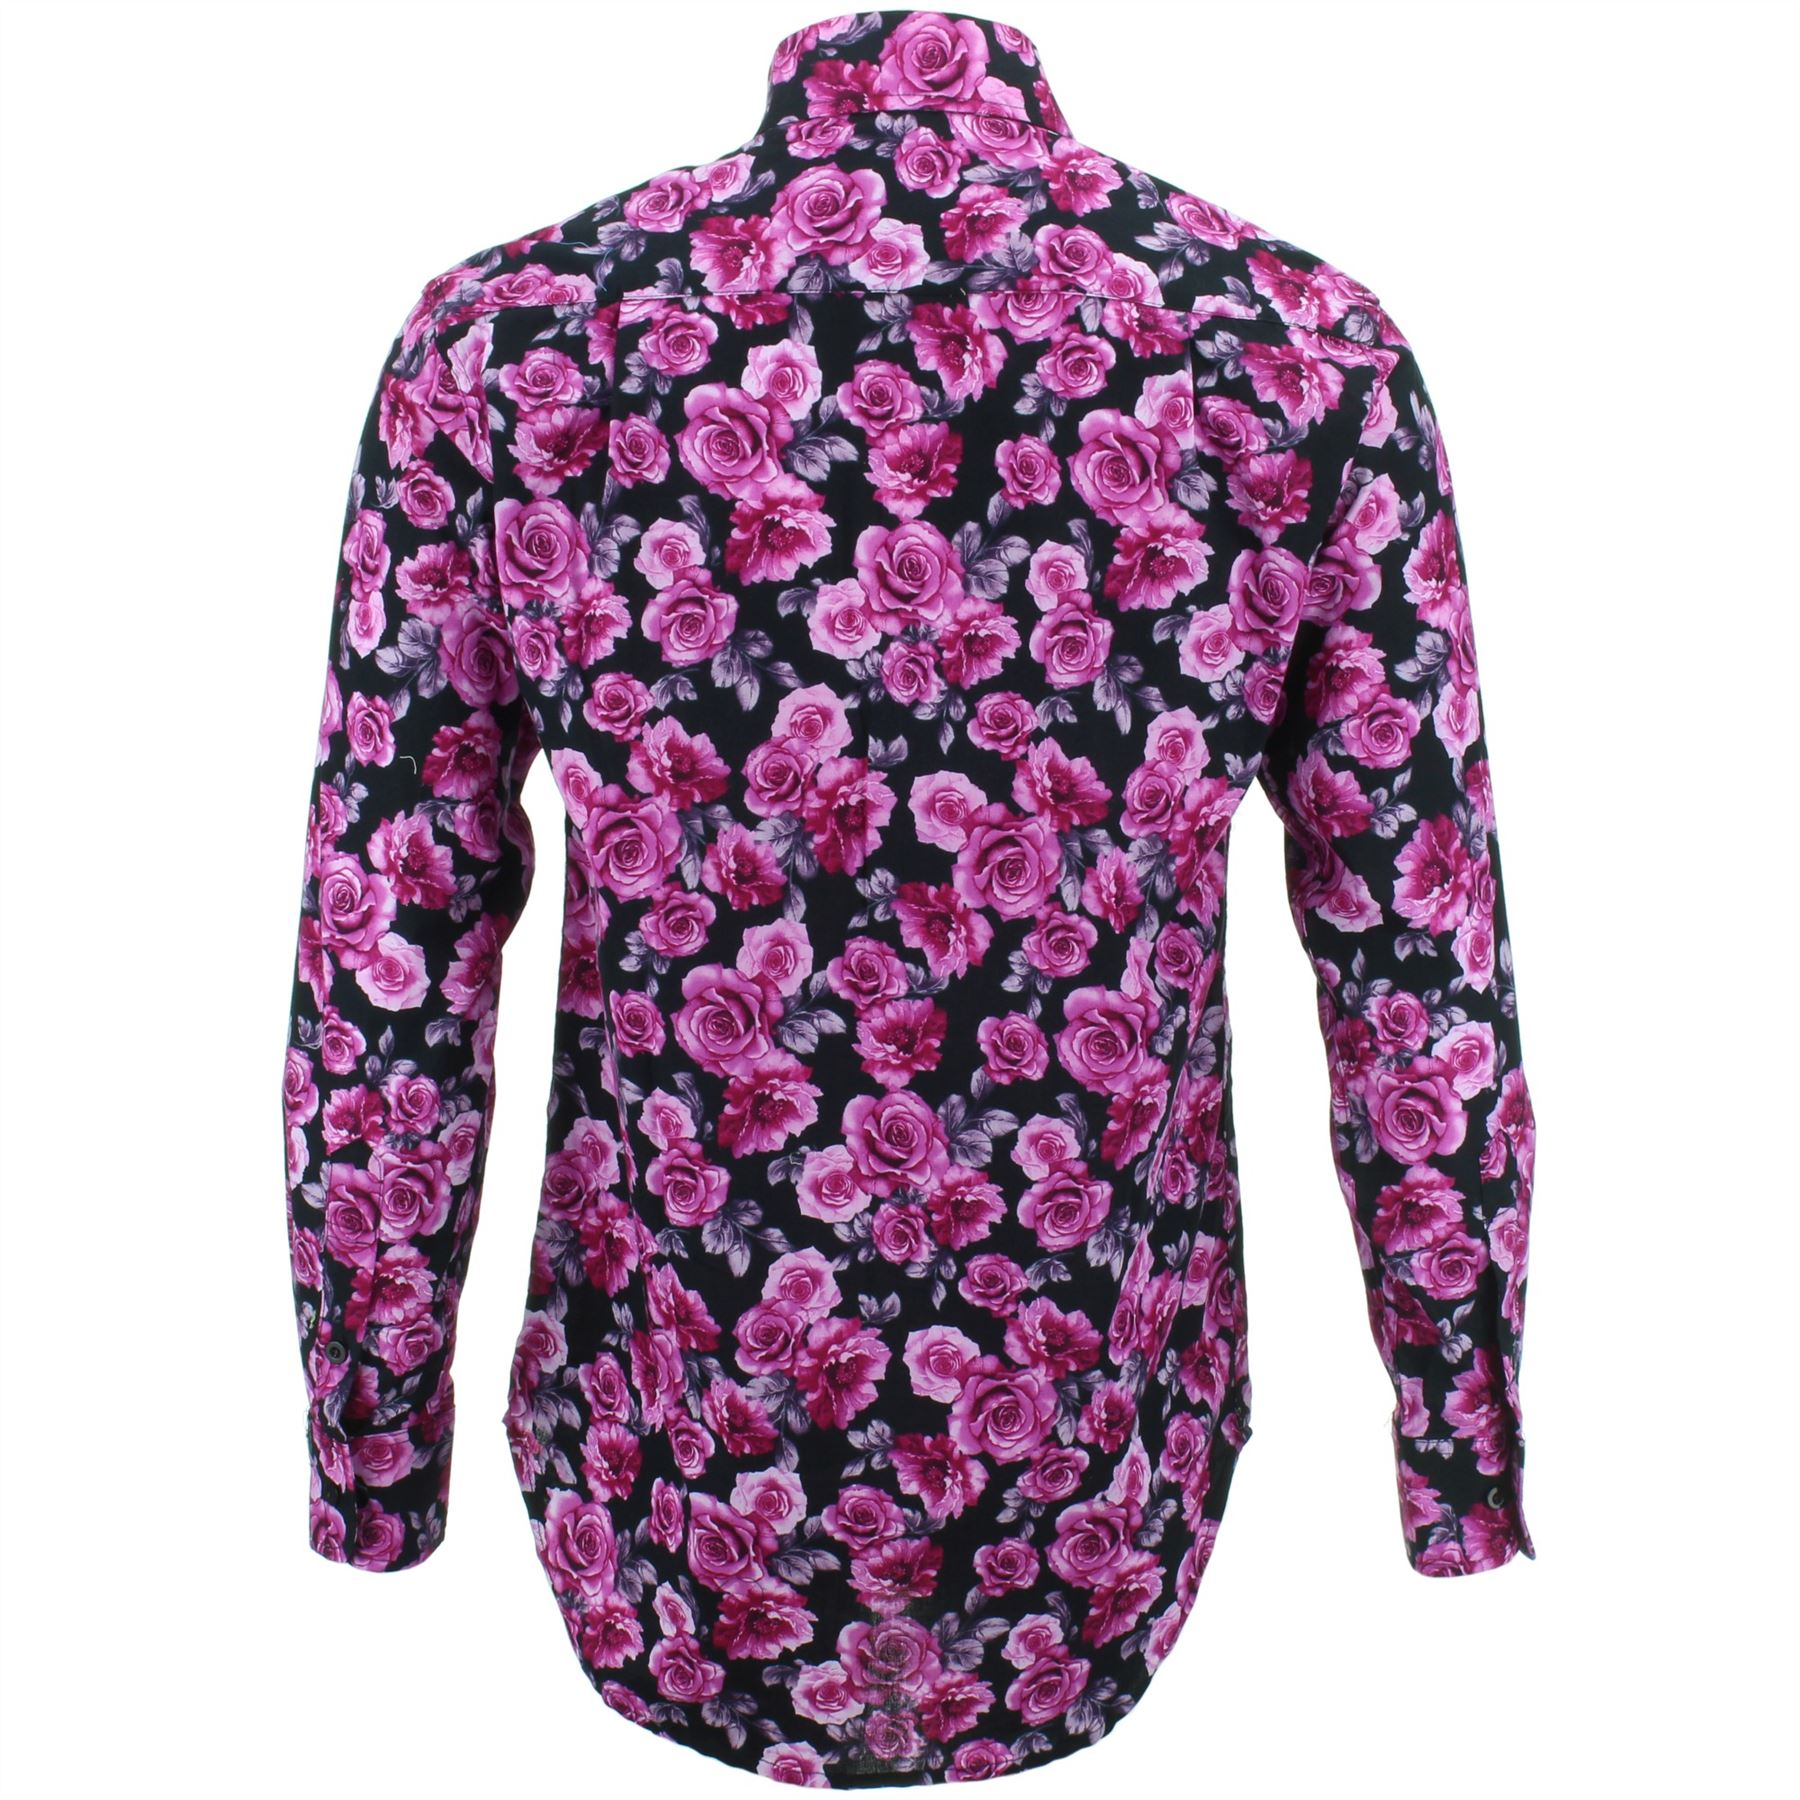 Originelen Fit Luid Floral Heren Retro Roses Regular Fancy Shirt Psychedelic EIwH6qB